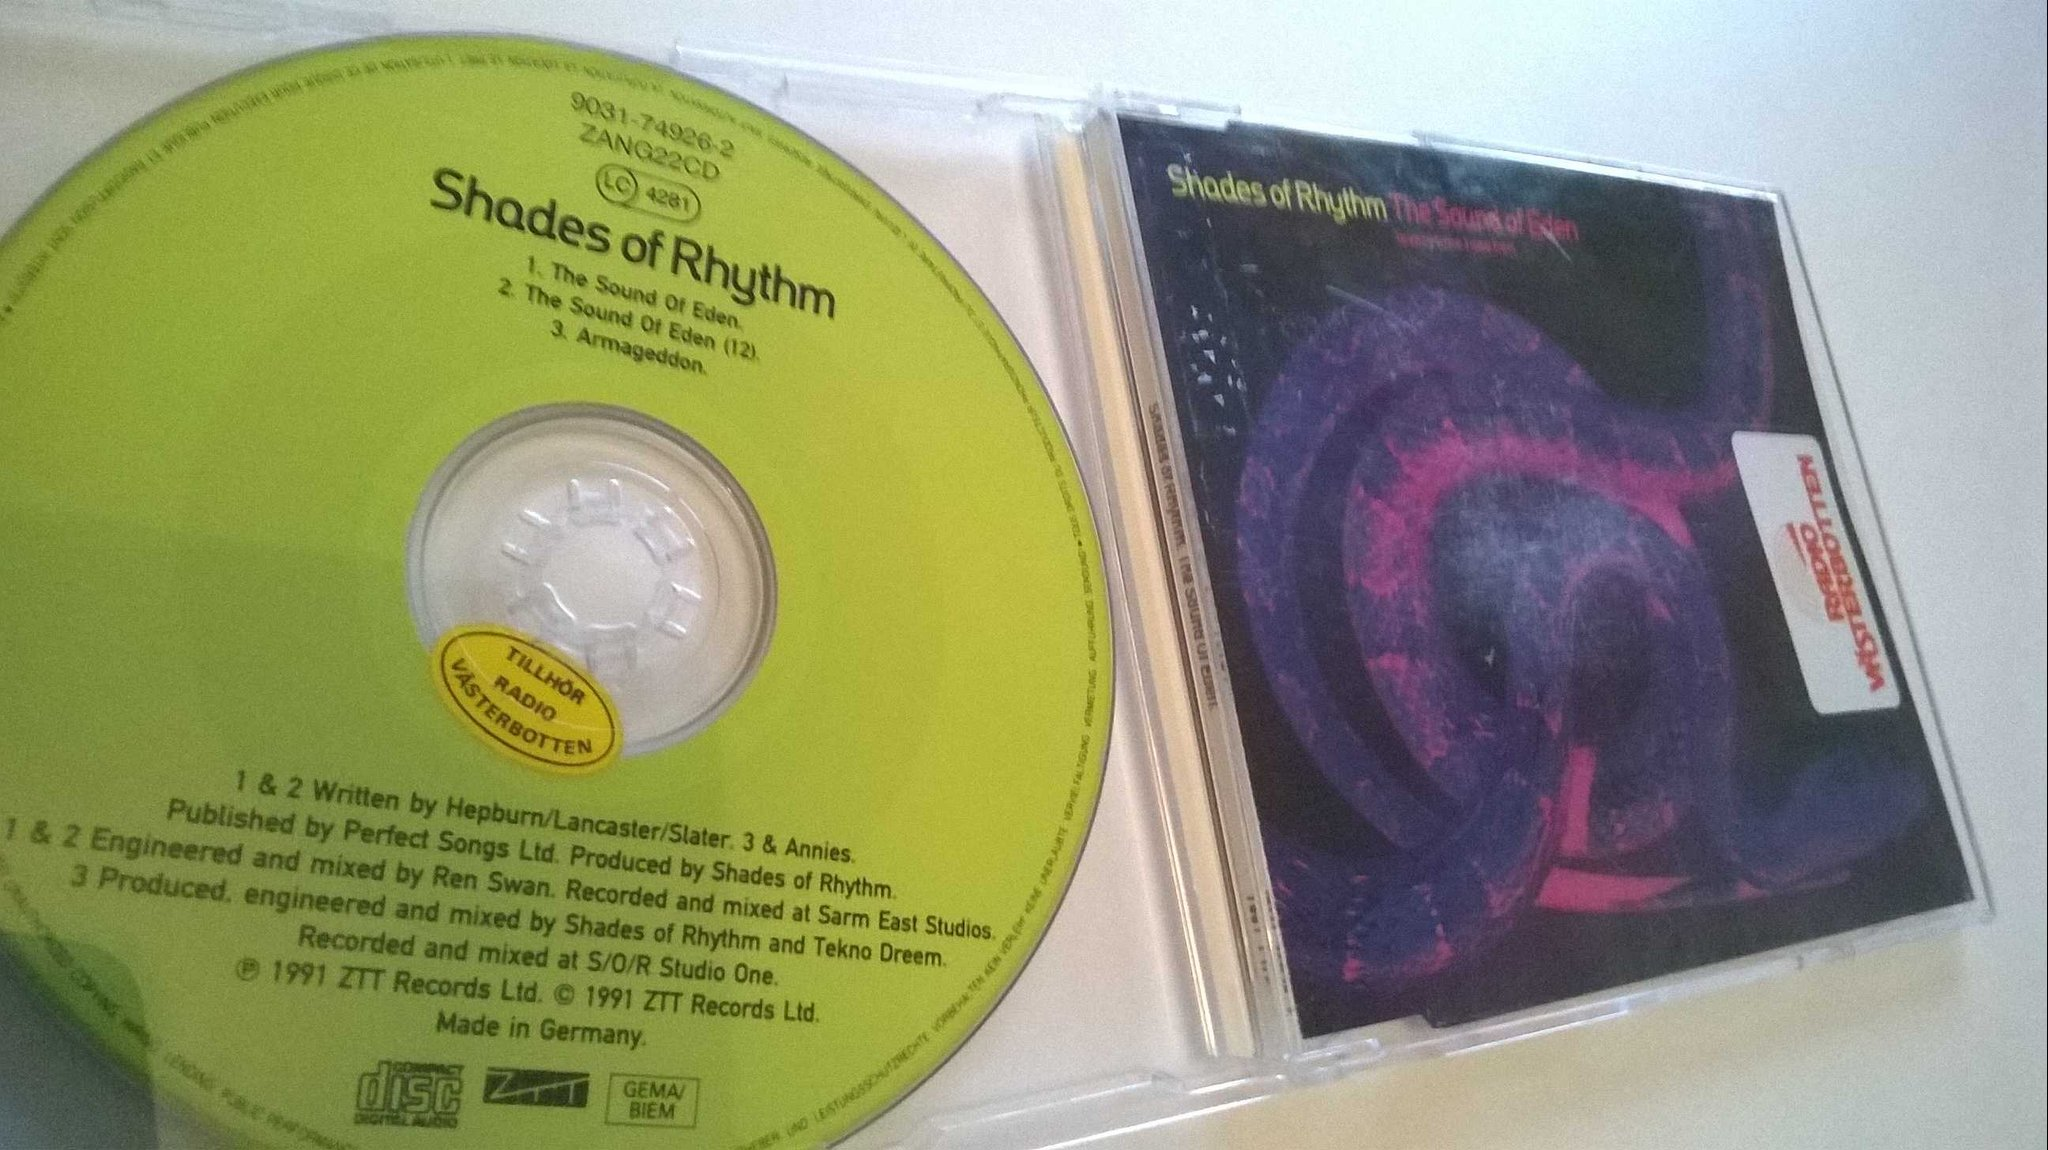 Shades Of Rhythm ?- The Sound Of Eden, CD, Single